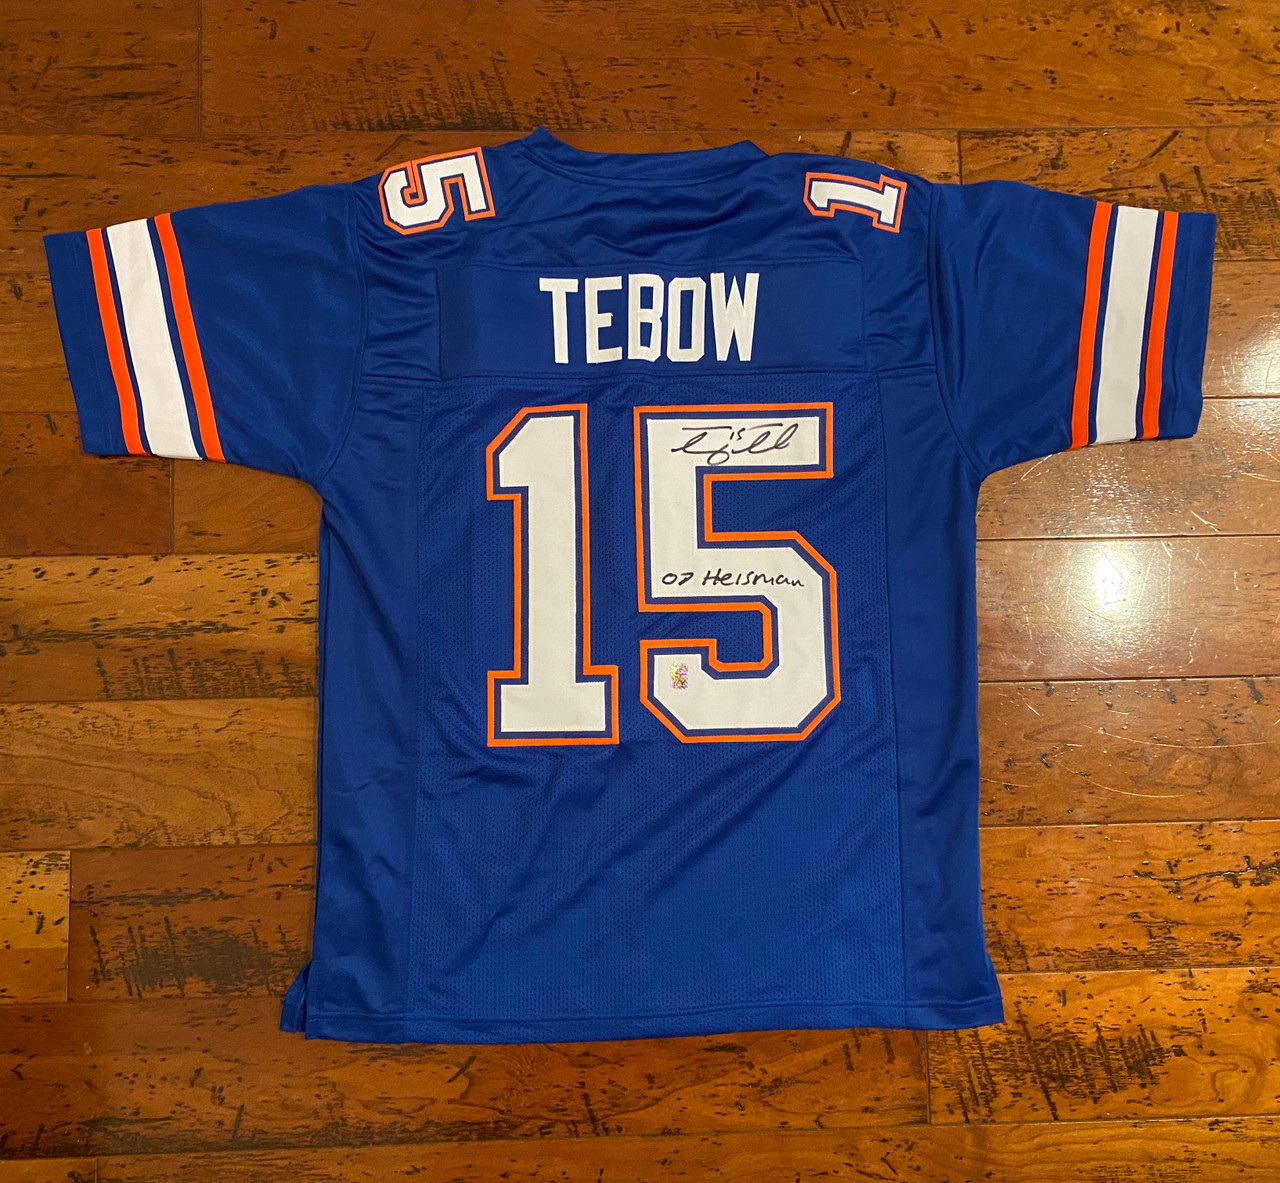 Tim Tebow Autographed Florida Blue Gators Jersey With 07 Heisman